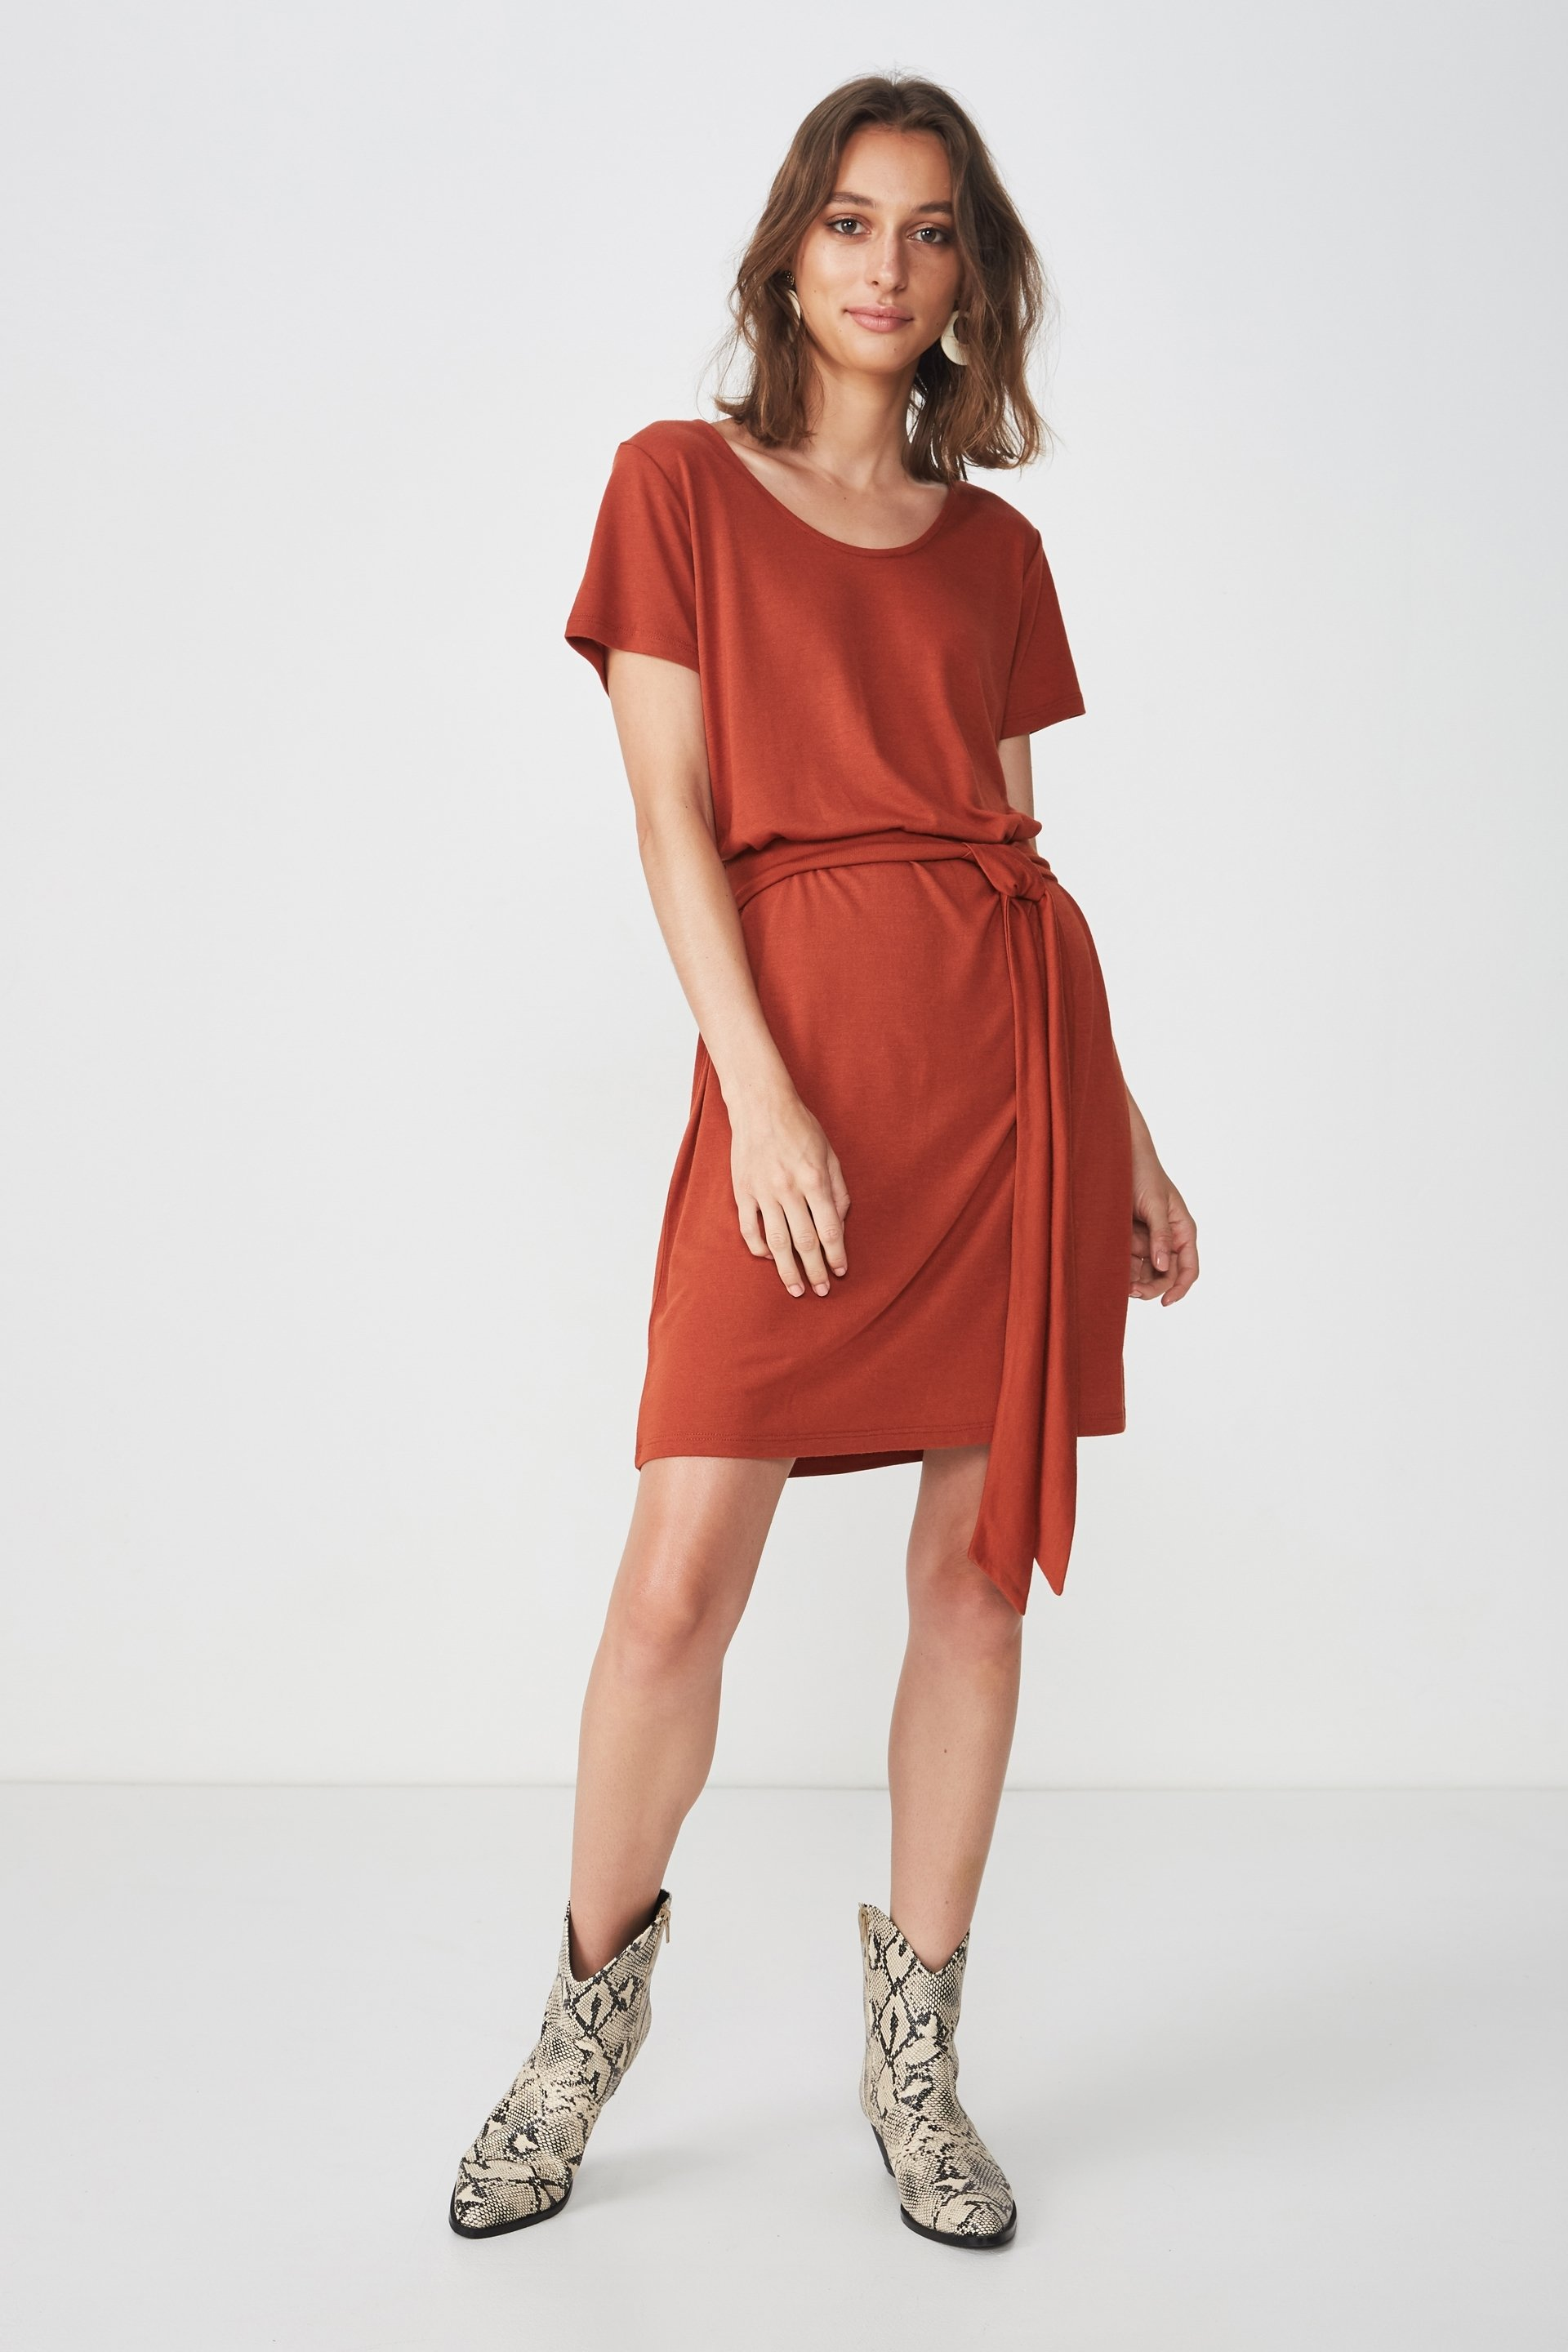 t shirt day dress